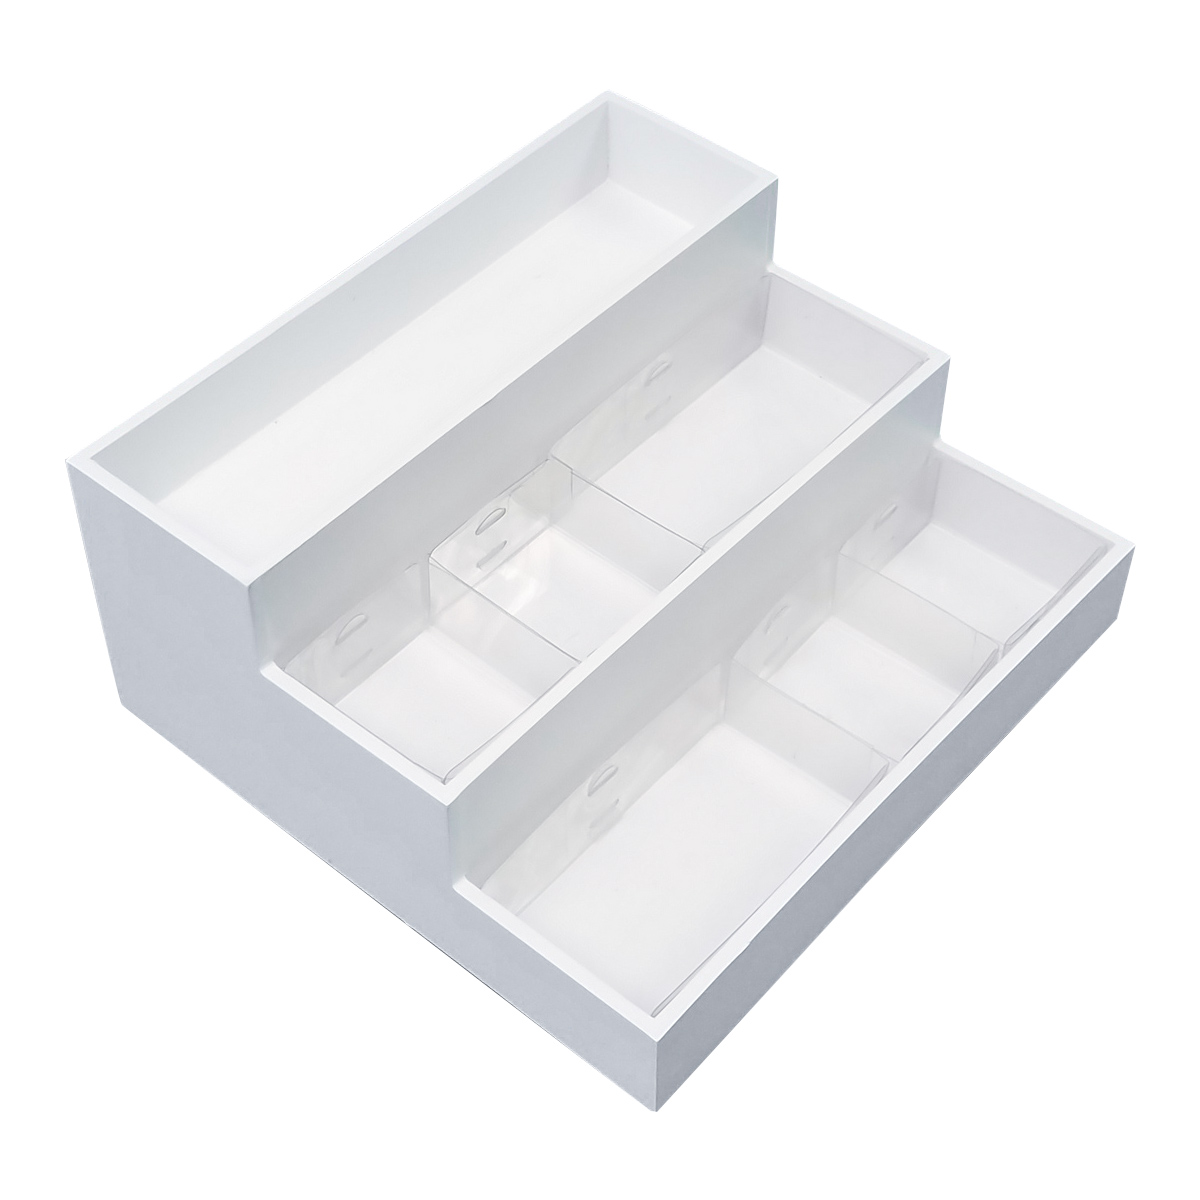 Organize your desk with our Desk Maid organizers